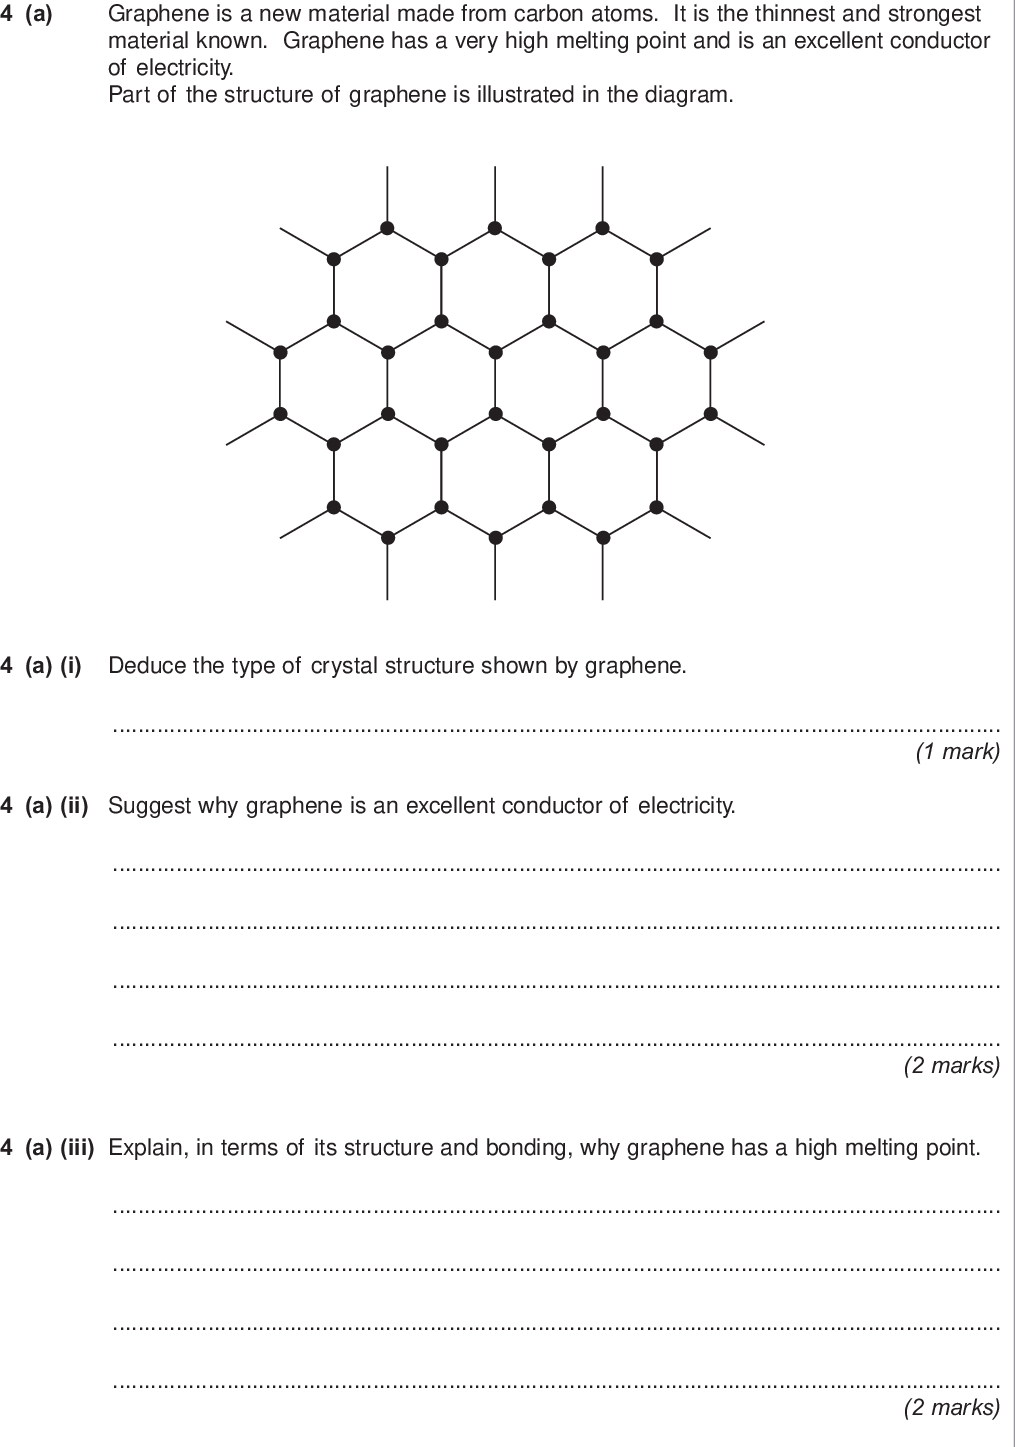 do not write outside the box a graphene is a new material made from carbon atoms it is the thinnest and strongest material known graphene has a very high melting point and is an excellent conductor of electricity part of the structure of graphene is illustrated in the diagram a i deduce the type of crystal structure shown by graphene mark a ii suggest why graphene is an excellent conductor of electricity marks a iii explain in terms of its structure and bonding why graphene has a high melting point marks wmp jun chem do not write outside the box b titanium is also a strong material that has a high melting point it has a structure similar to that of magnesium b i state the type of crystal structure shown by titanium mark b ii explain in terms of its structure and bonding why titanium has a high melting point marks c titanium can be hammered into objects with different shapes that have similar strengths c i suggest why titanium can be hammered into different shapes mark c ii suggest why these objects with different shapes have similar strengths mark d magnesium oxide mgo has a melting point of k predict the type of crystal structure in magnesium oxide and suggest why its melting point is high type of crystal structure explanation marks turn over wmp jun chem section b answer all questions in the spaces provided do not write outside the box a boron trichloride bcl can be prepared as shown by the following equation b o s c s cl g bcl g co g a sample of boron oxide b o was reacted completely with carbon and chlorine the two gases produced occupied a total volume of cm at a pressure of kpa and a temperature of k calculate the mass of boron oxide that reacted give your answer to significant figures the gas constant r j k mol marks extra space wmp jun chem